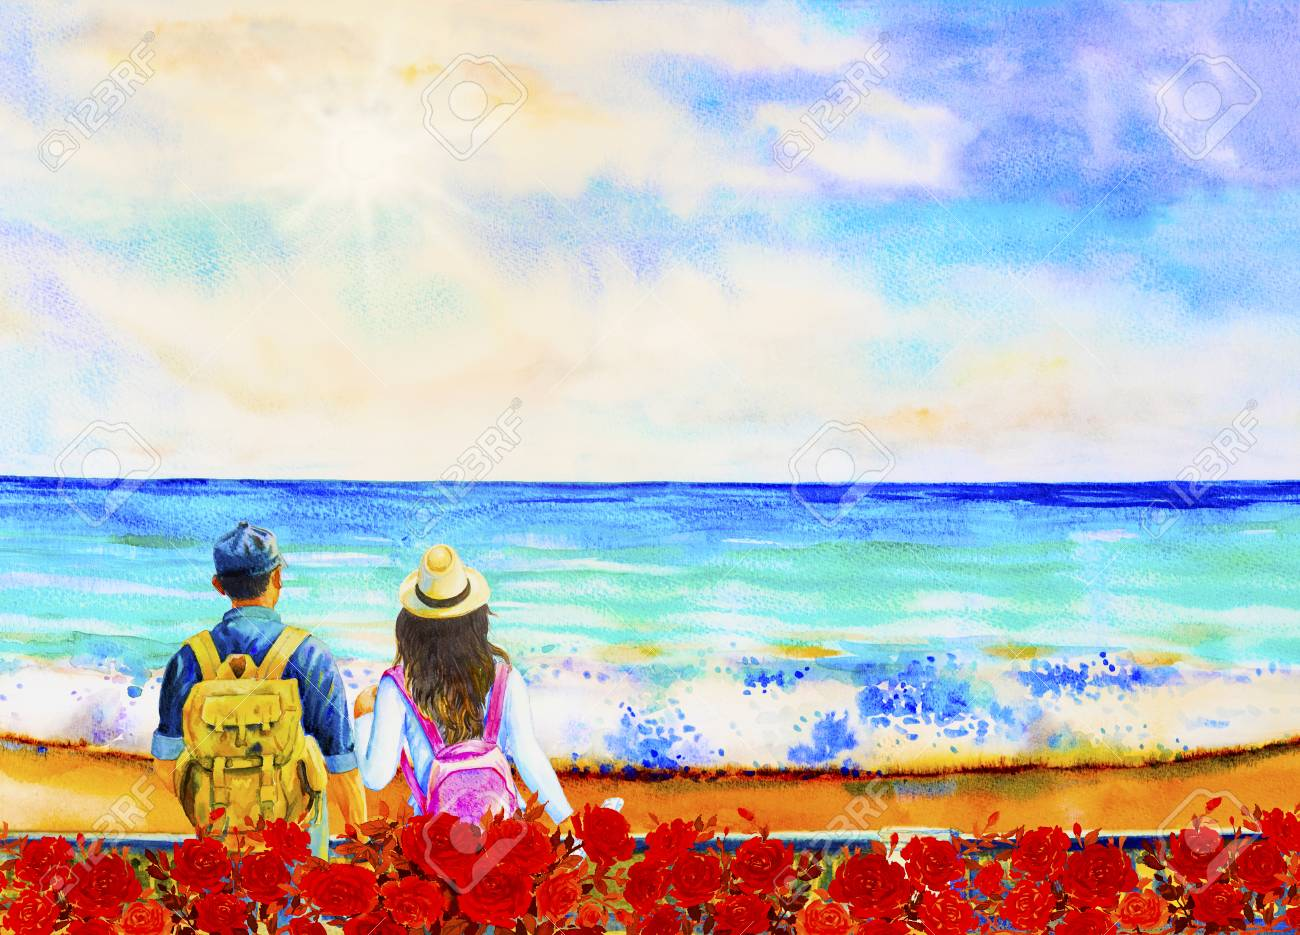 Illustration - Watercolor painting seascape of couple Man and woman travel  with backpack. Ocean travel lifestyle concept adventure active summer. 5e0c1b2992d3b